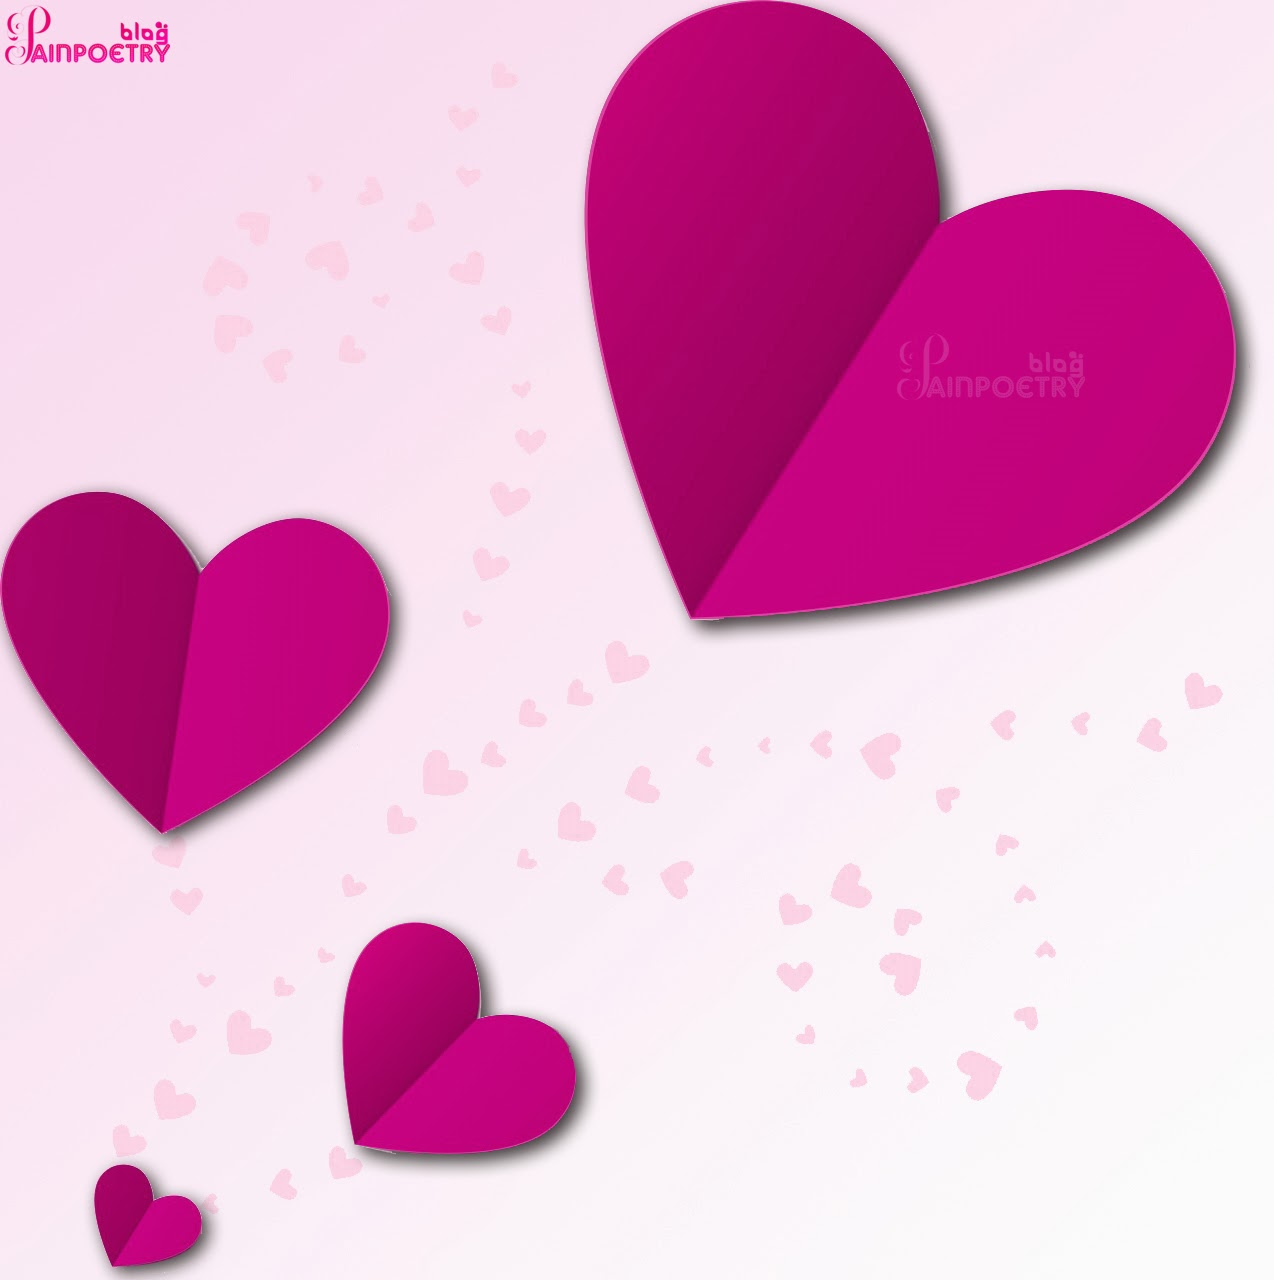 Love-Wallpaper-With-Lot-Of-Hearts-Image-Photo-Wallpaper-HD